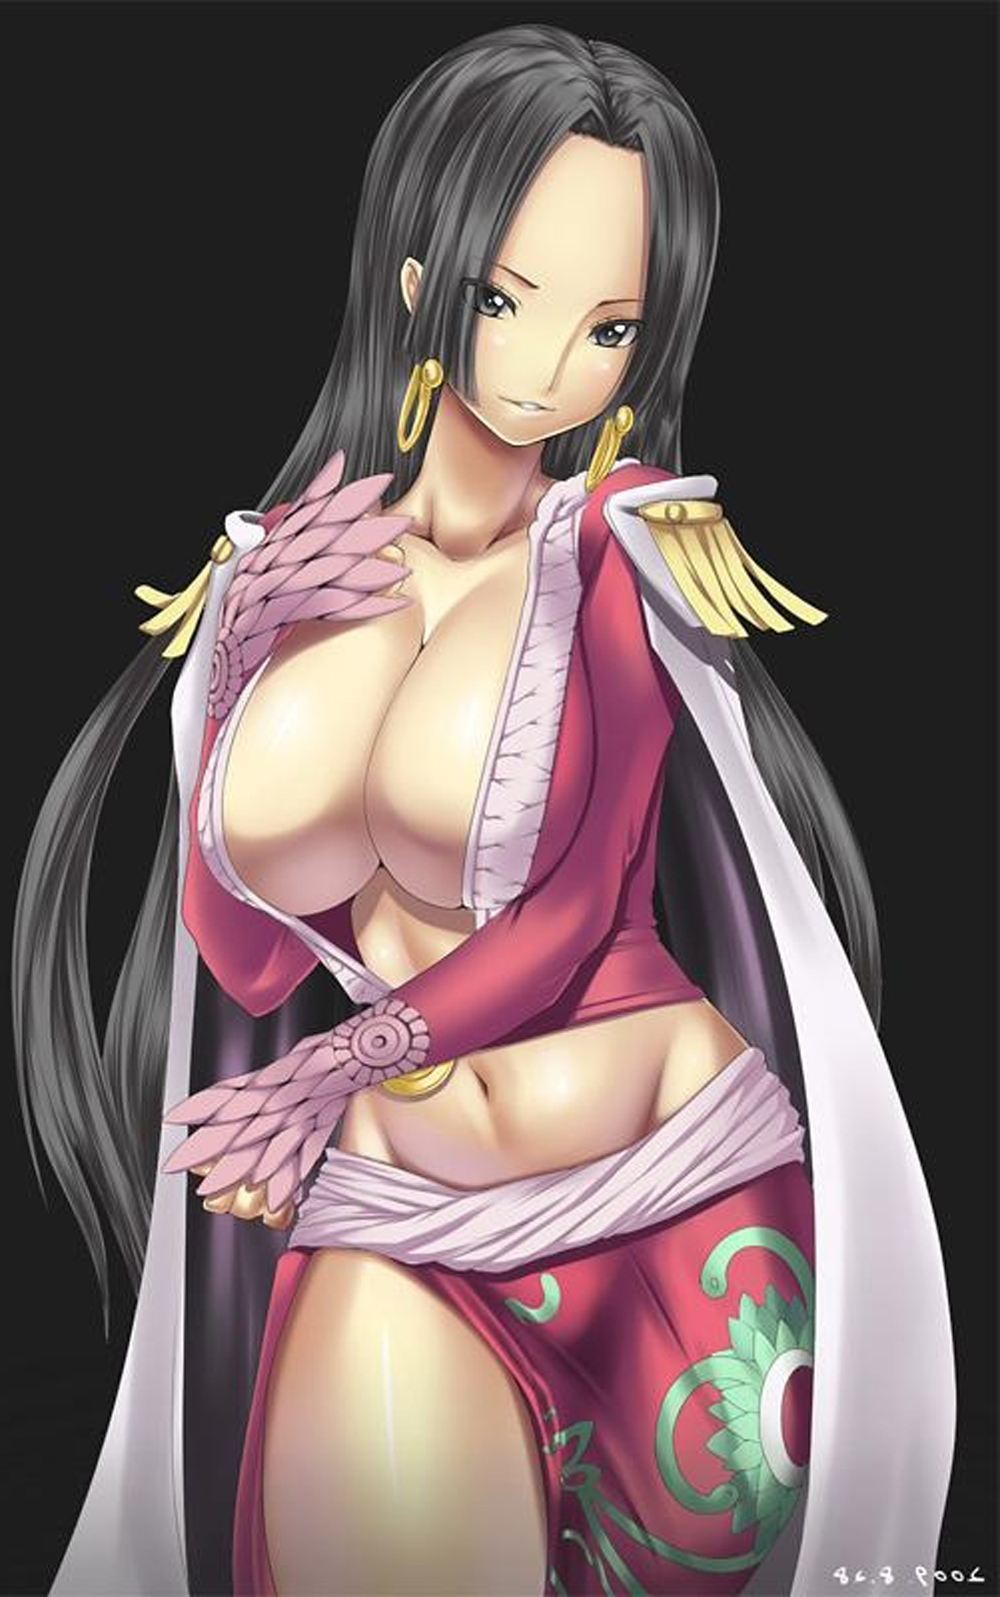 Toon sex pic ##00013062113 boa hancock breasts cleavage compression artifacts earrings highres huge breasts jewelry midriff one piece resized